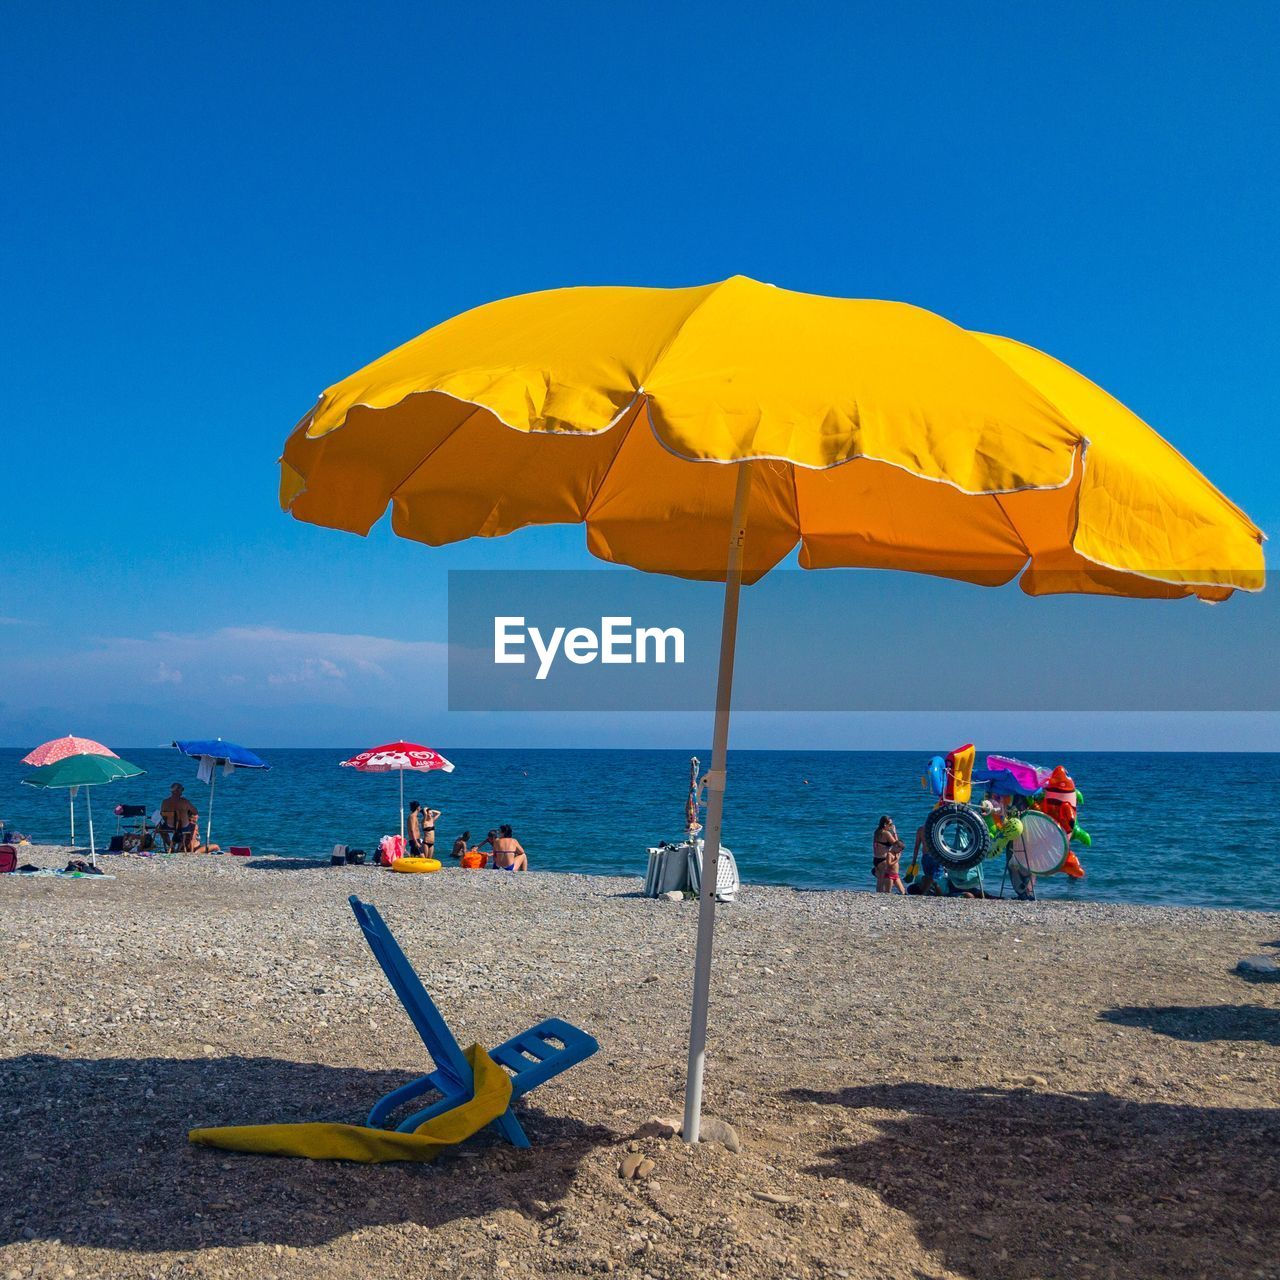 water, sea, beach, land, sky, parasol, protection, shade, umbrella, sand, nature, beach umbrella, blue, sunlight, yellow, clear sky, horizon over water, day, beauty in nature, outdoors